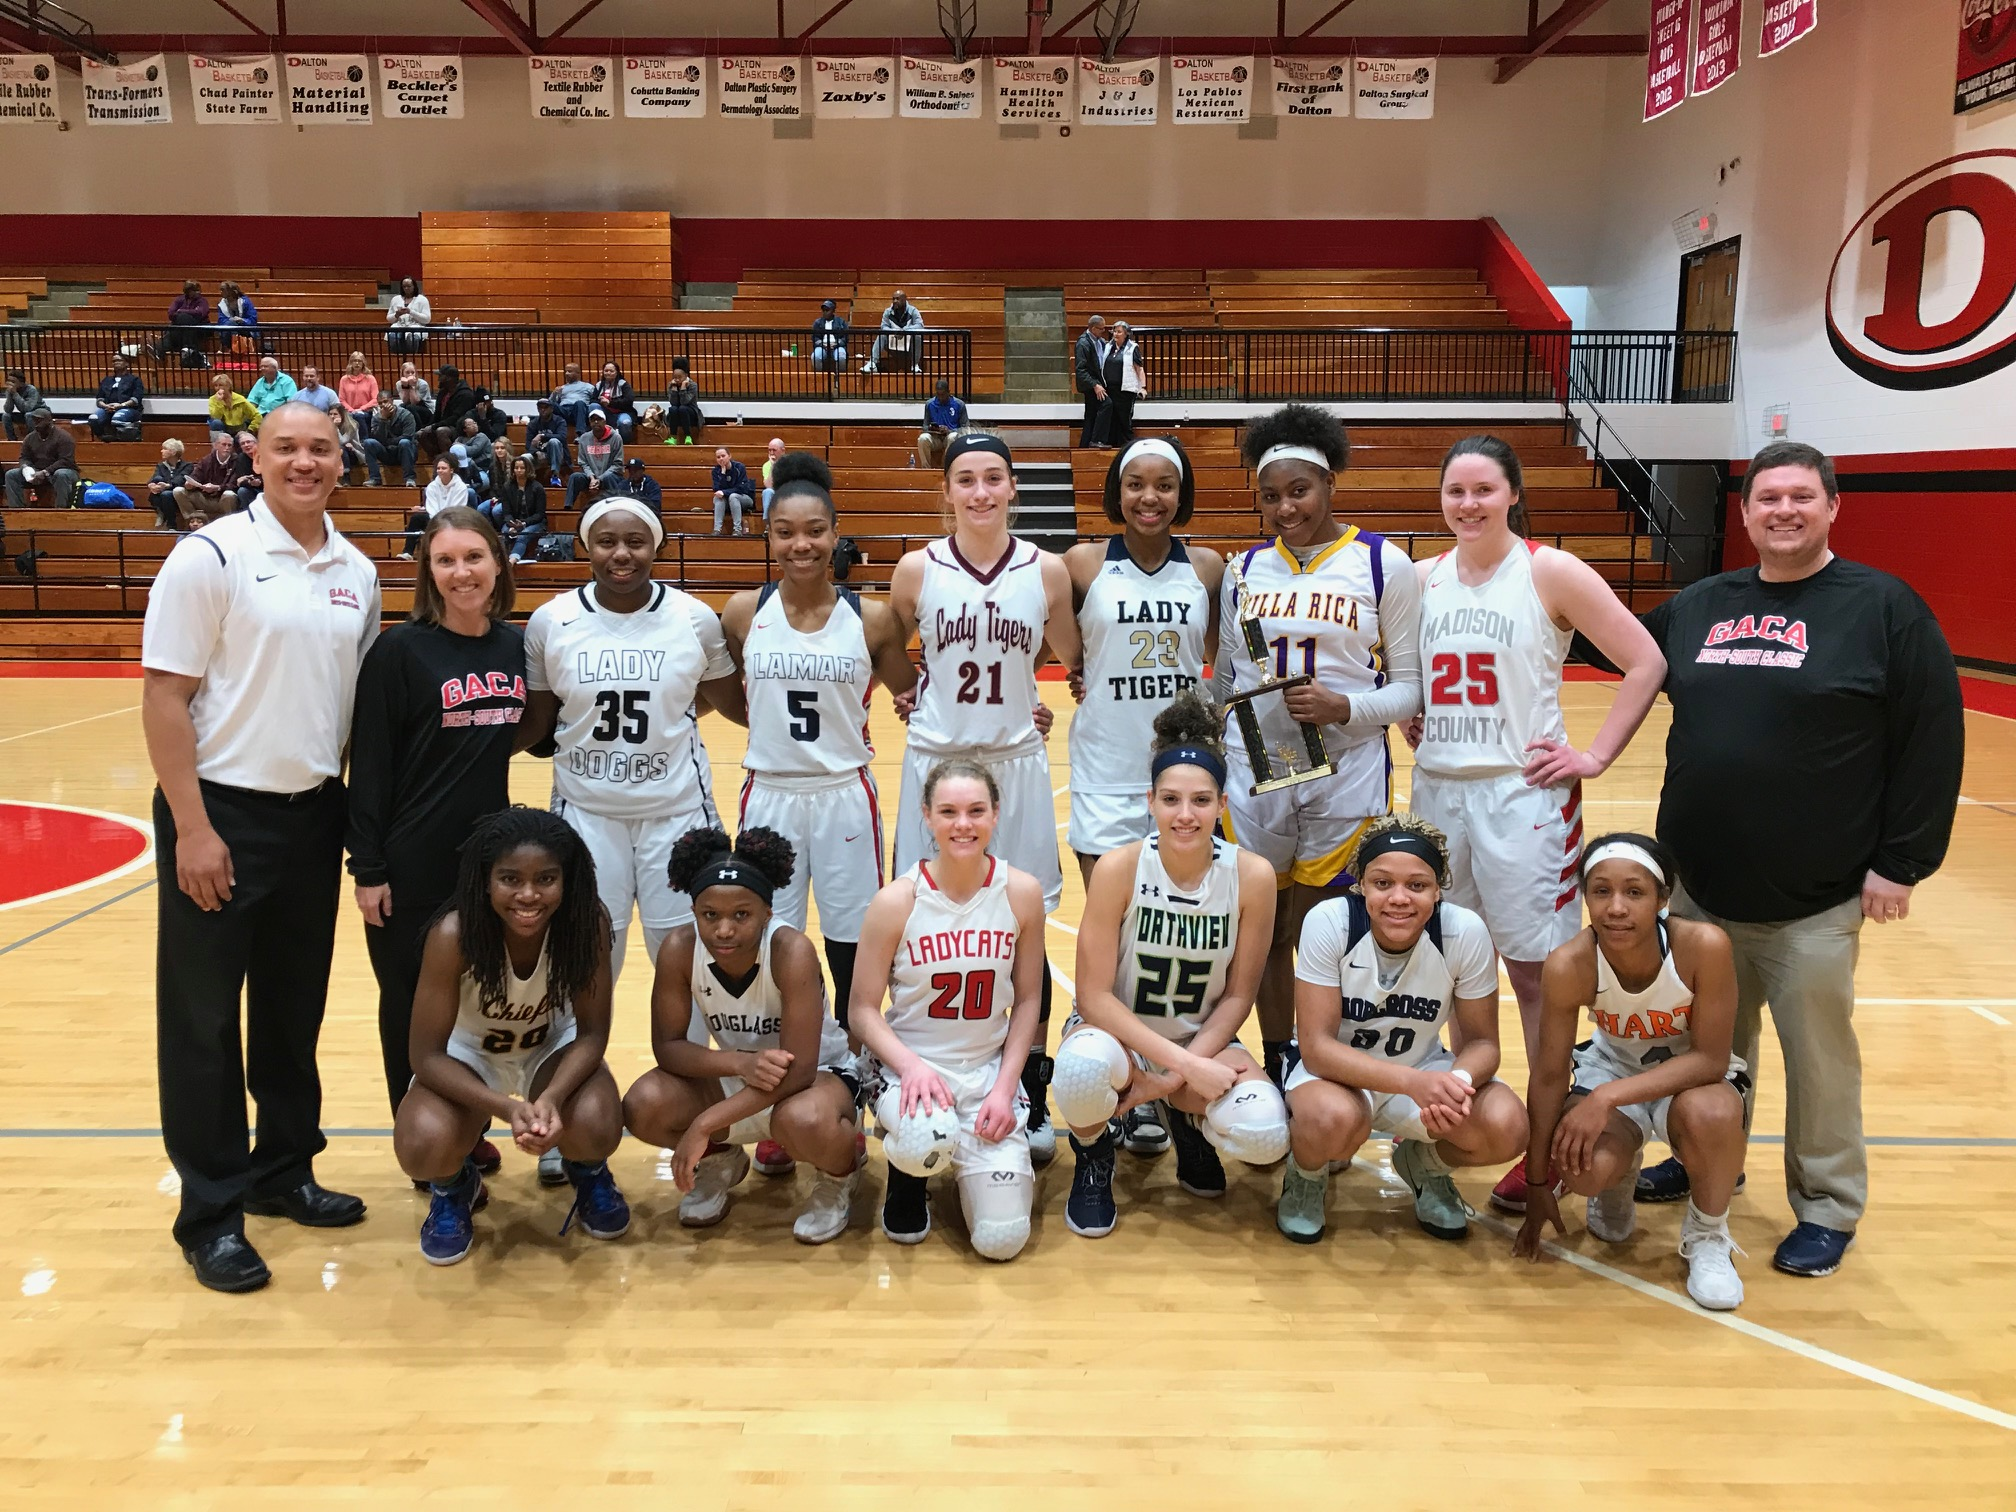 2018 GACA Junior Girls North All-Star Team